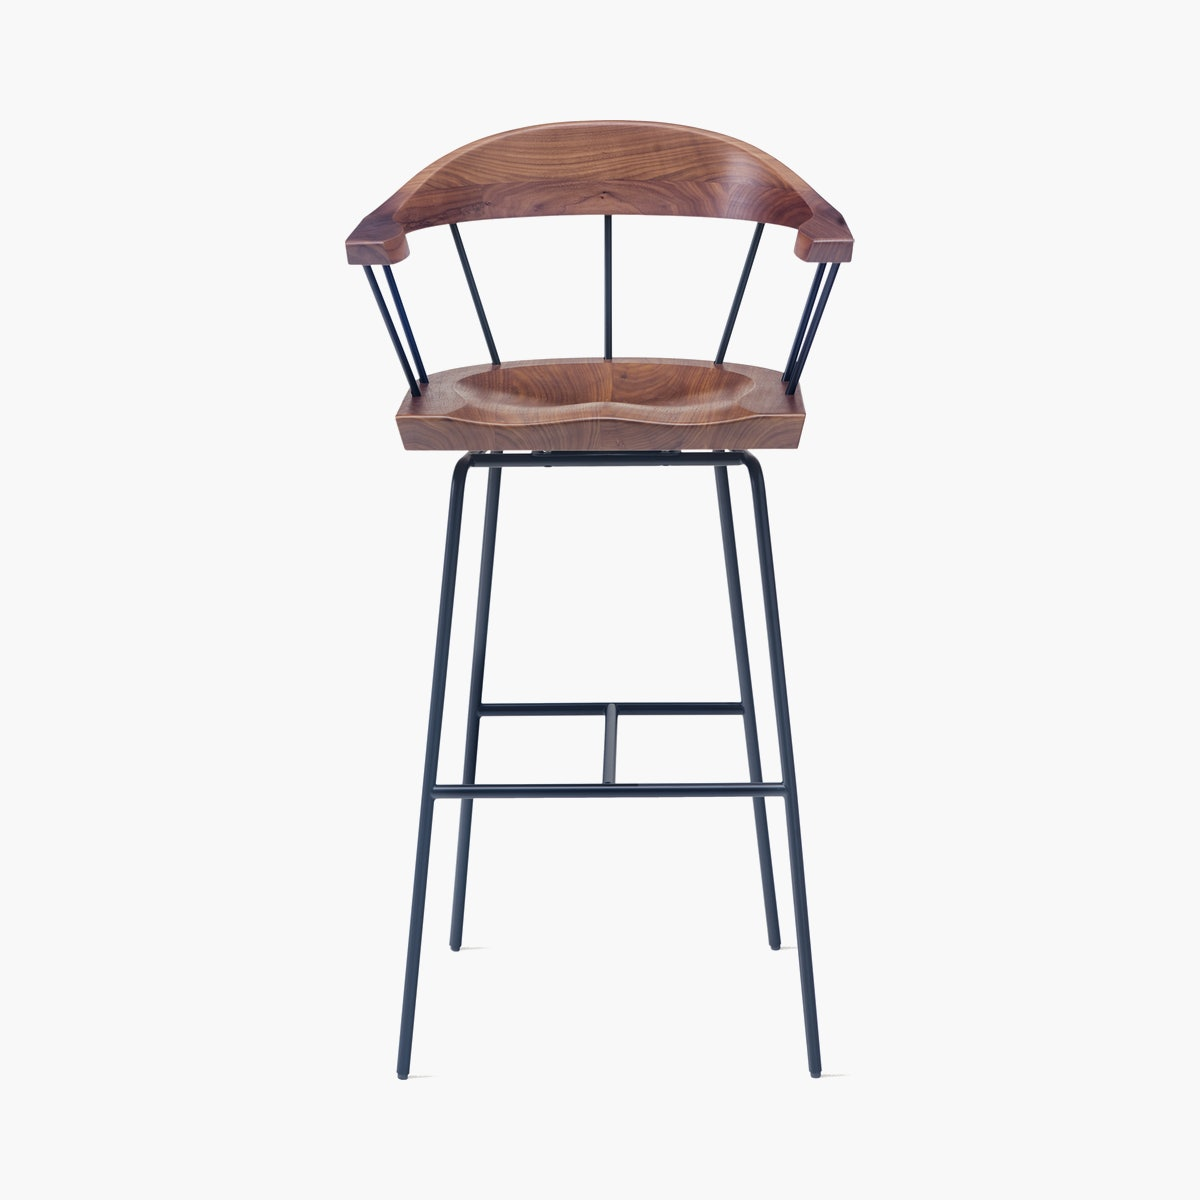 Spindle Stool, Chair